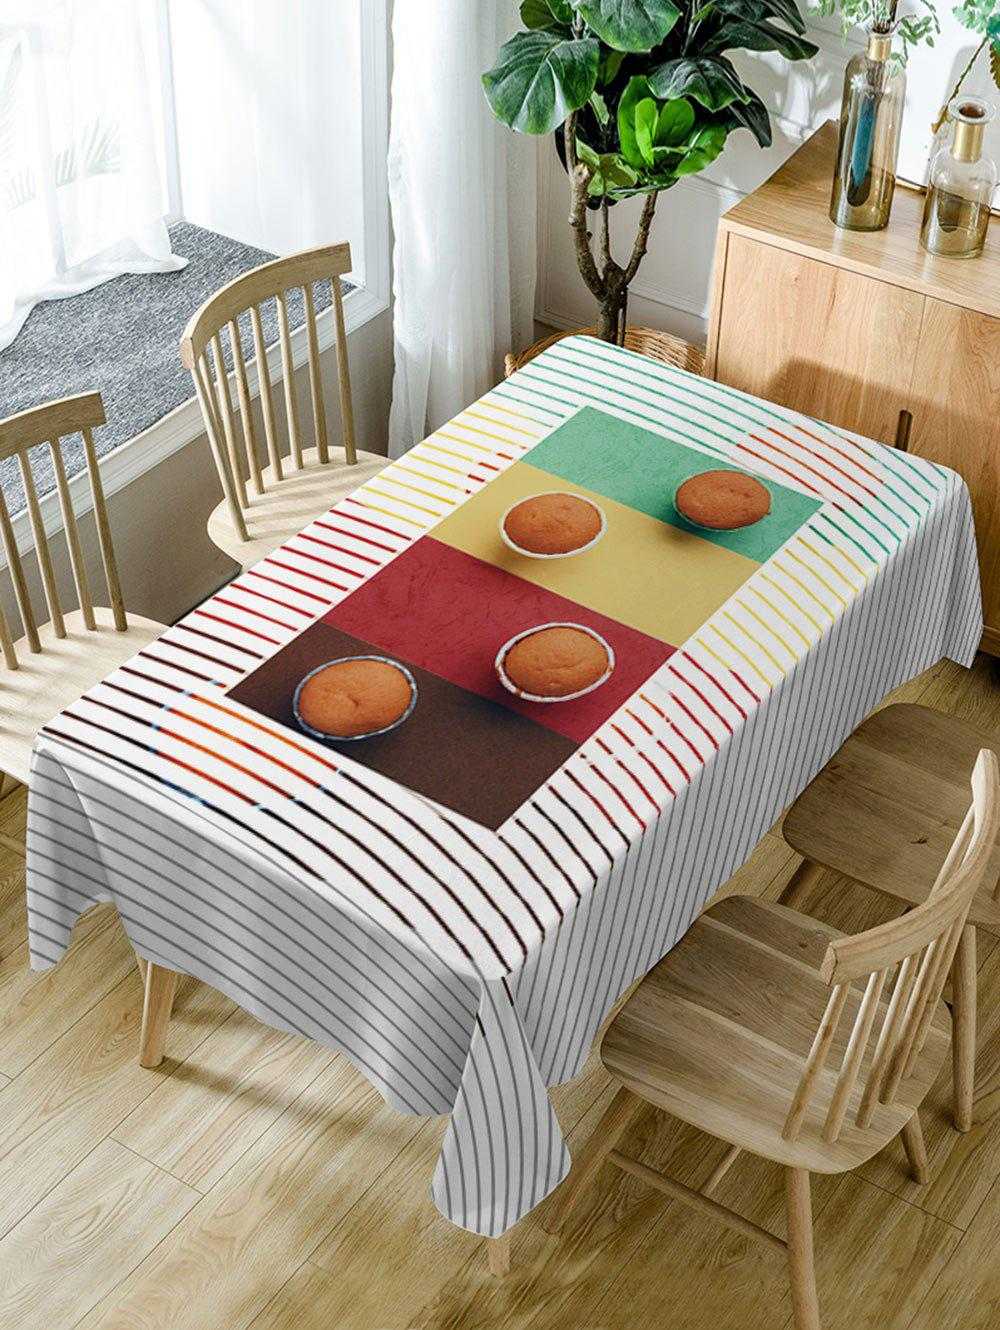 Cake Stripe Print Waterproof Table Cloth - COLORMIX W54 INCH * L72 INCH